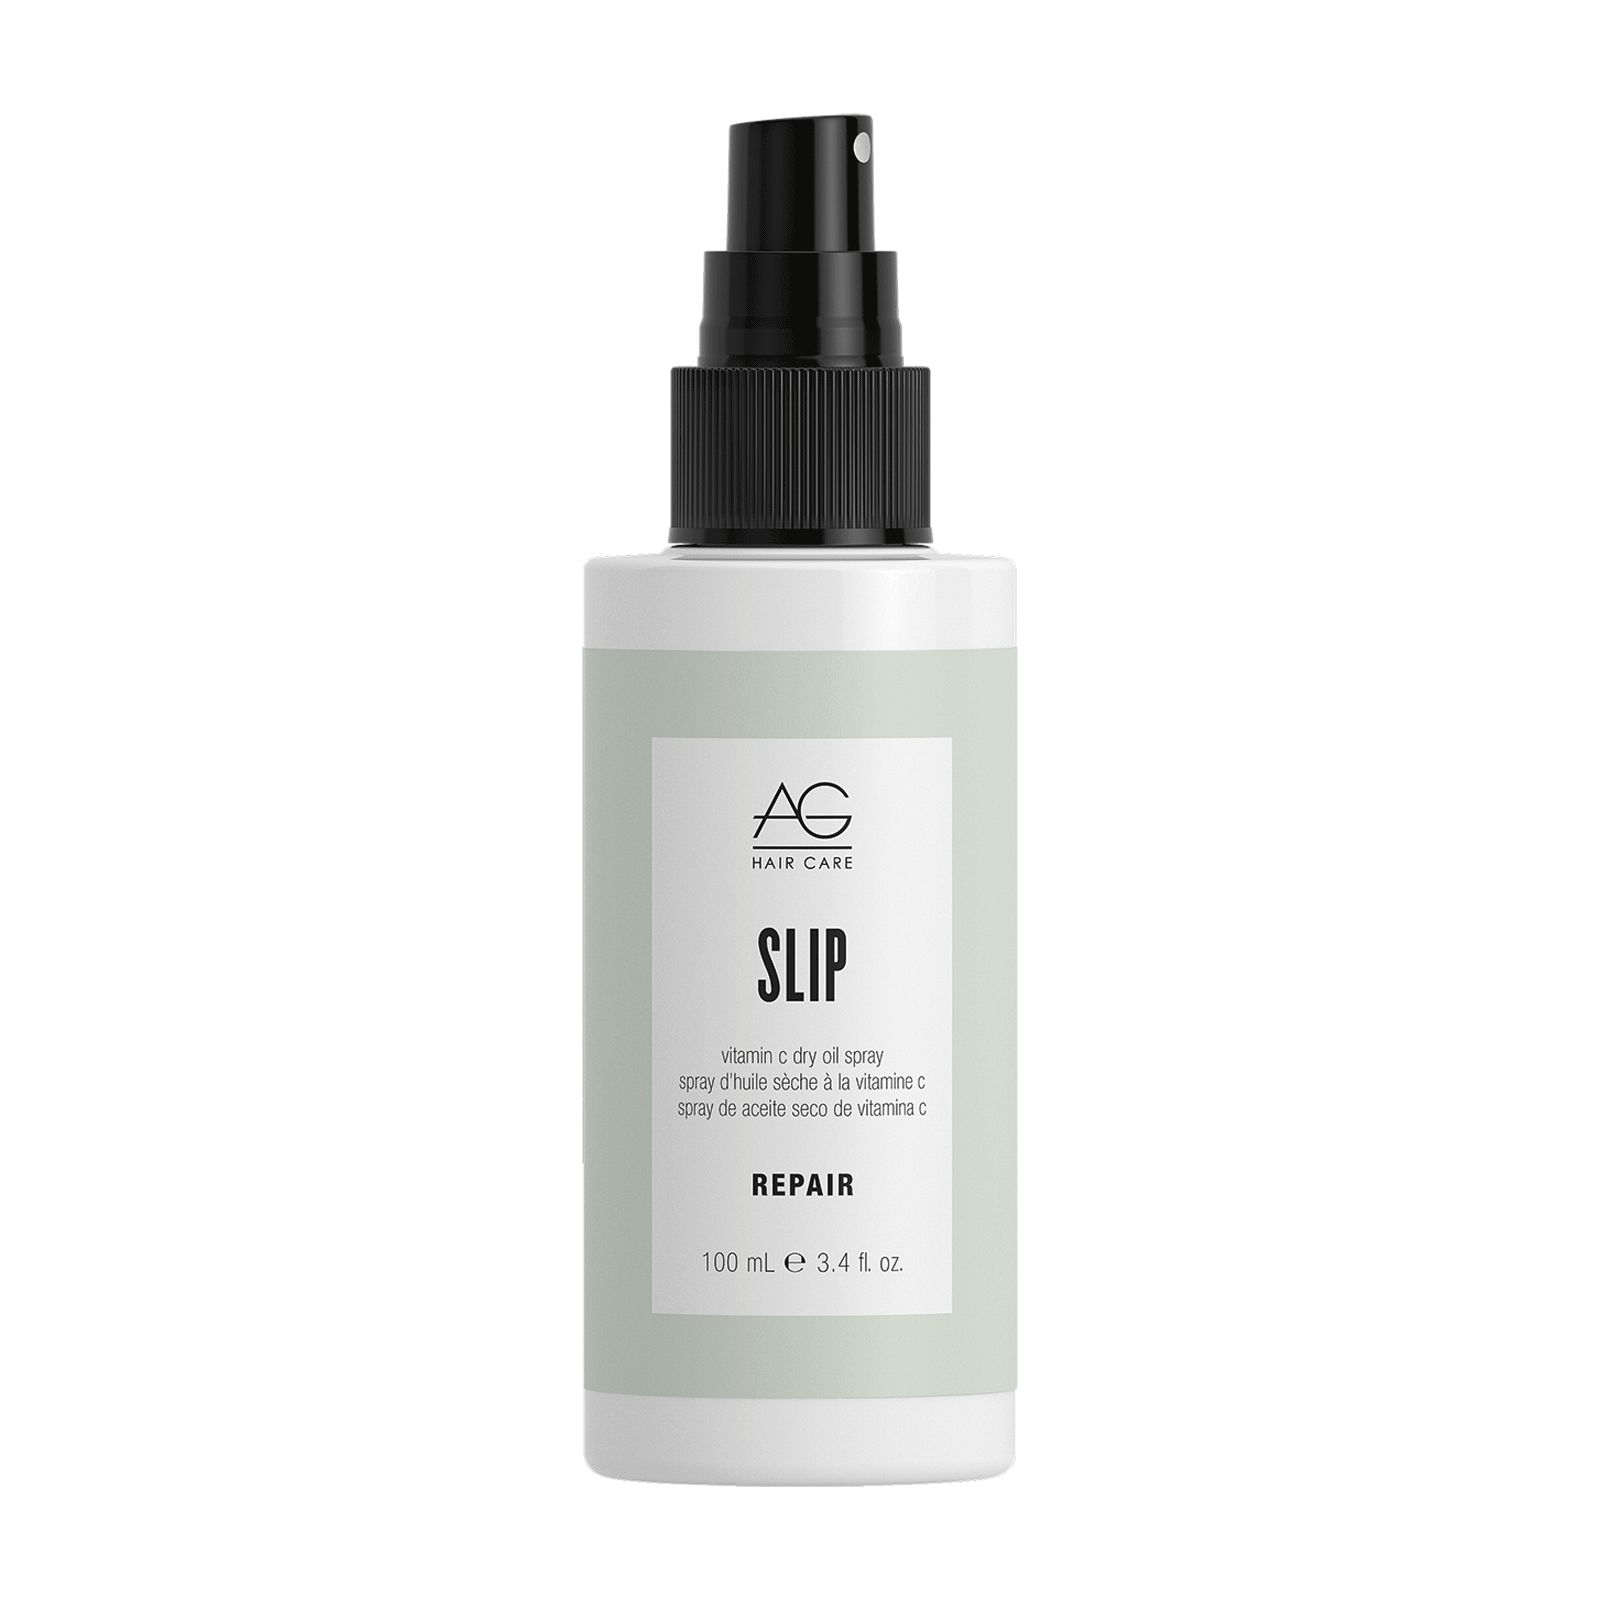 Slip Vitamin C Dry Oil Spray